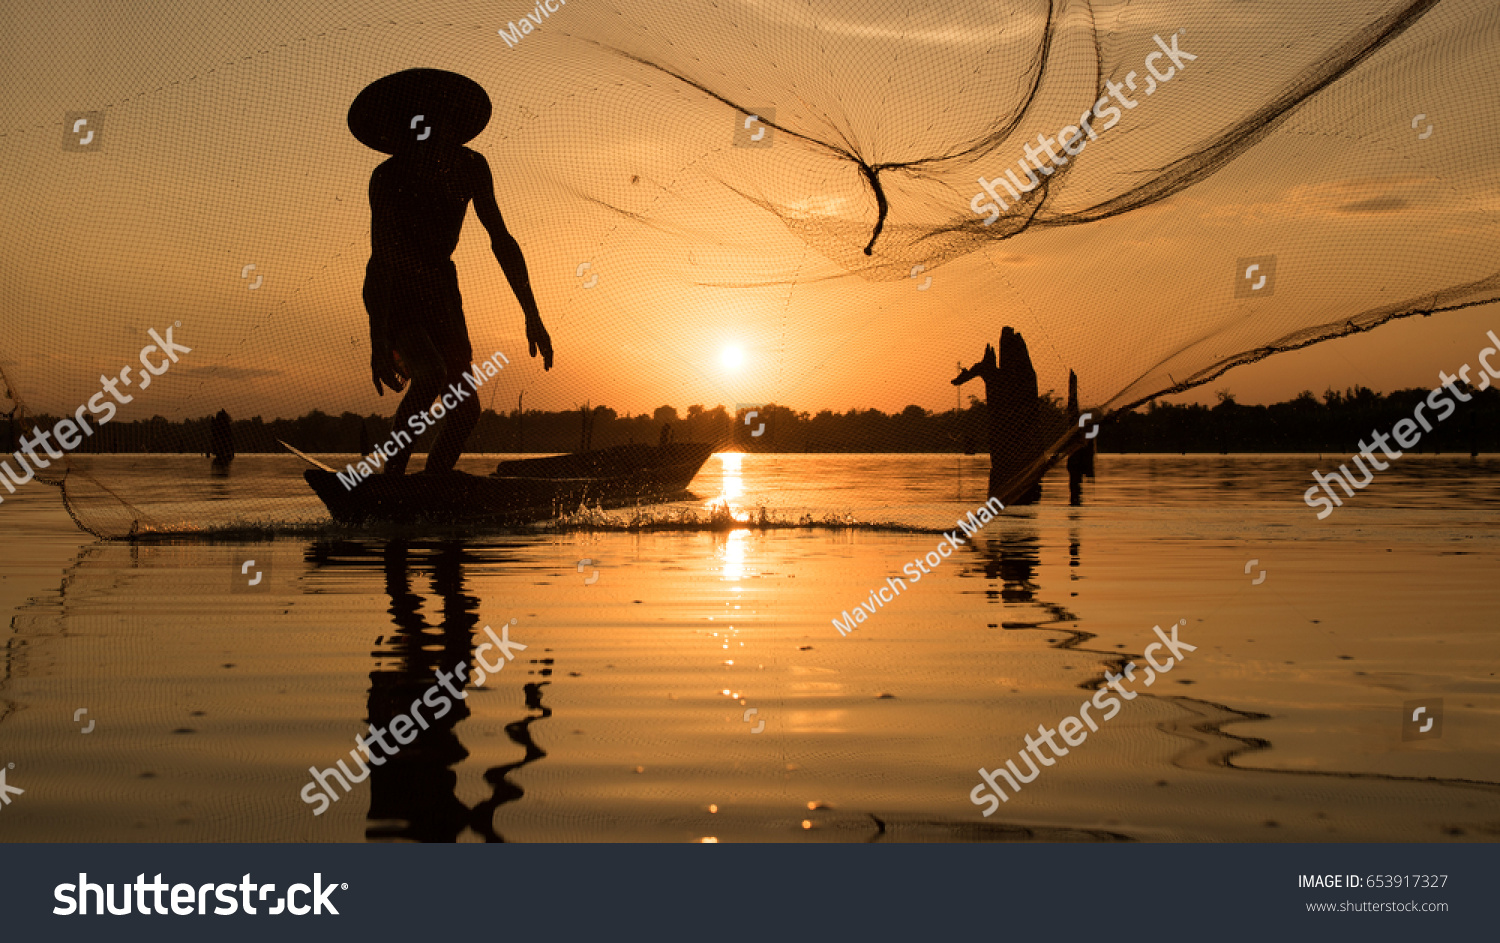 Fishermen using fishing nets.Silhouette fisherman on boat ,fishingman net, fishingman on boat, fisherman silhouette,fisherman boat, fishing with nets in the morning #653917327